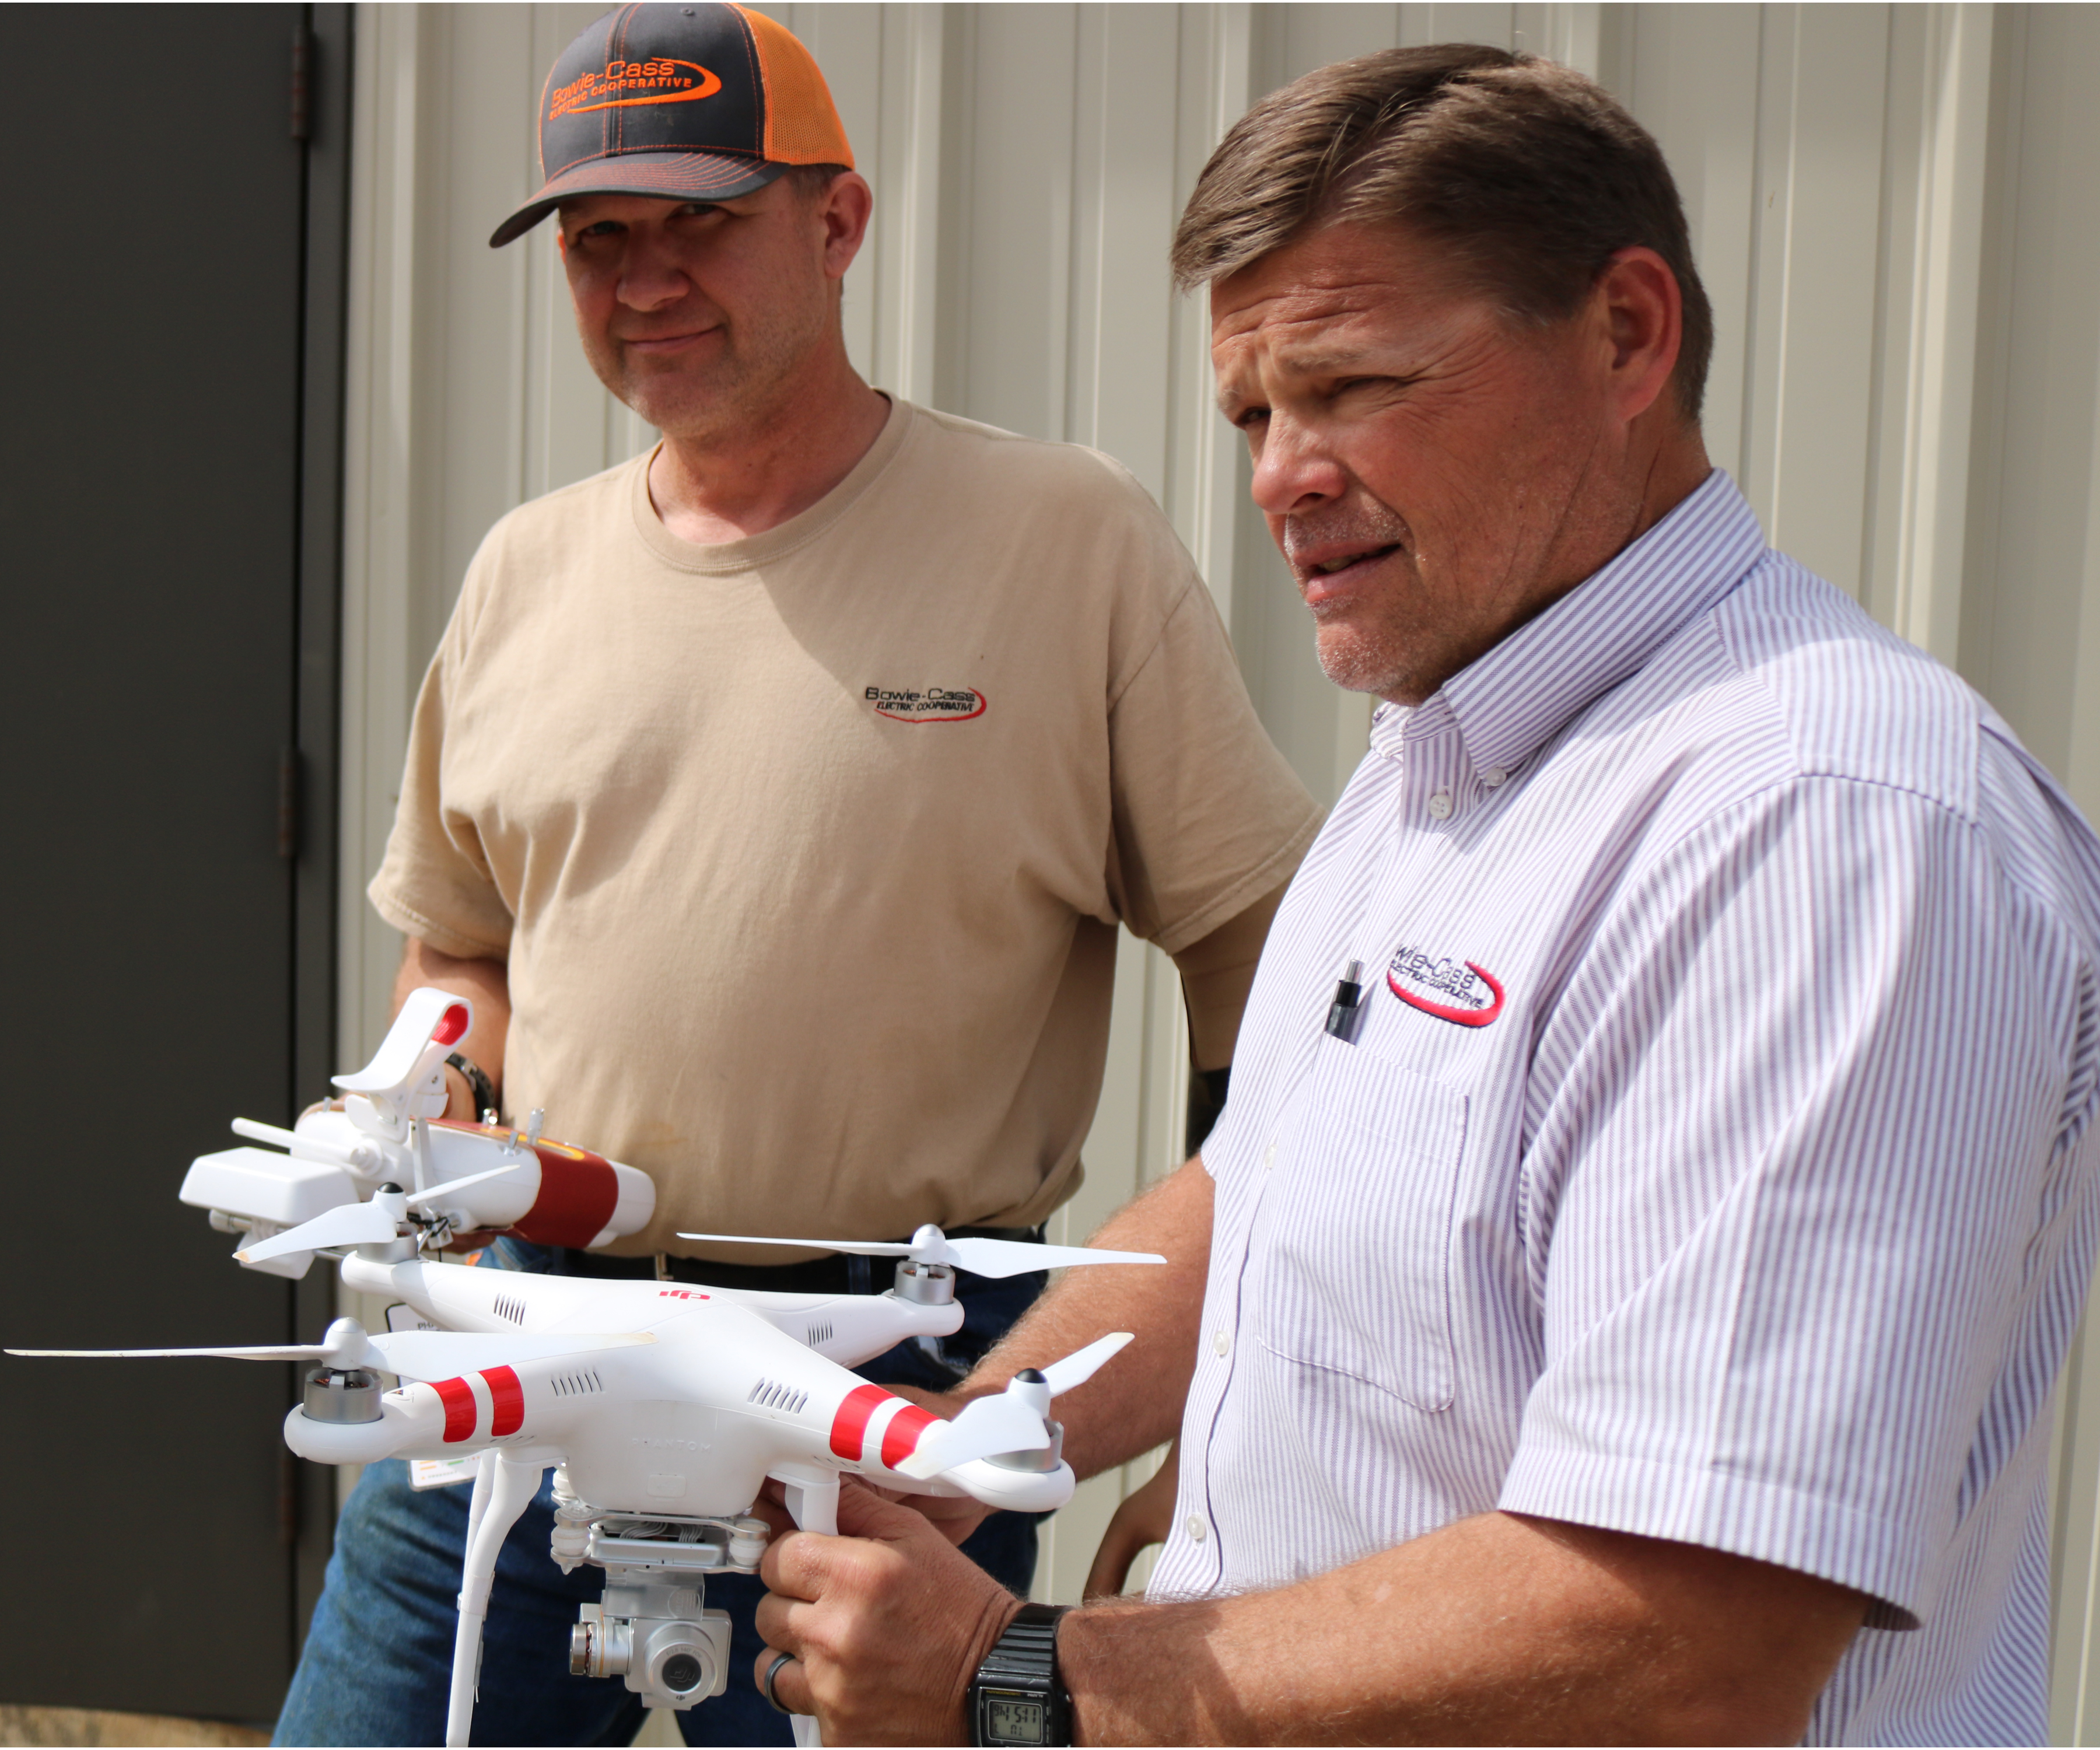 Monte Simpson and Greg Russell demonstrate the drone.